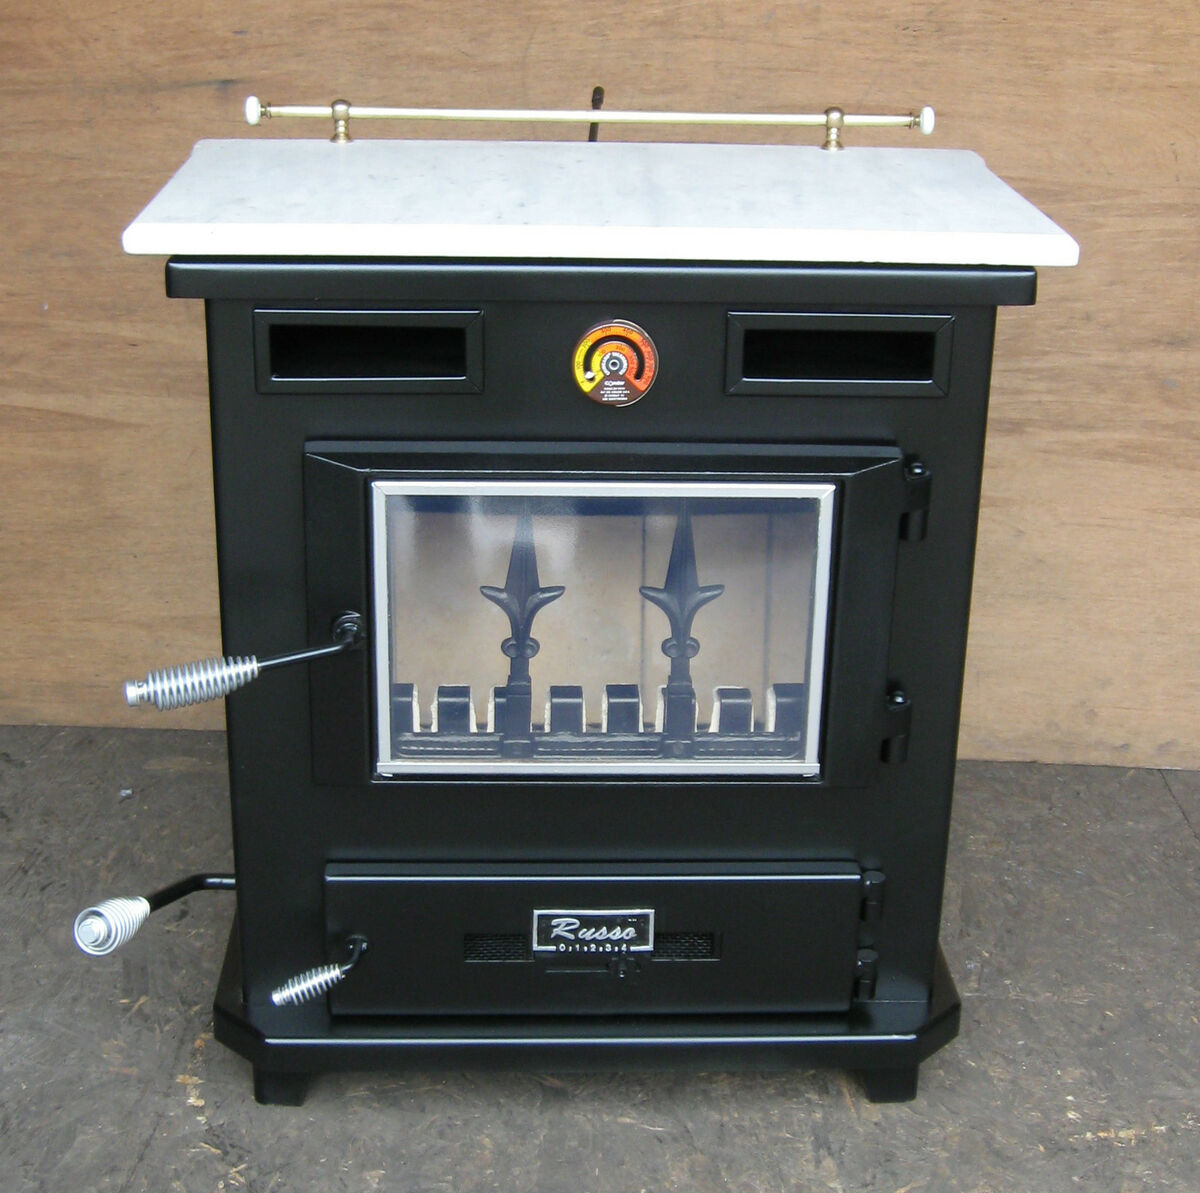 Russo Wood Stove Coal Stove Pick Up SHIP Acton MA - Russo Wood Stove Coal Stove Pick Up SHIP Acton MA On PopScreen